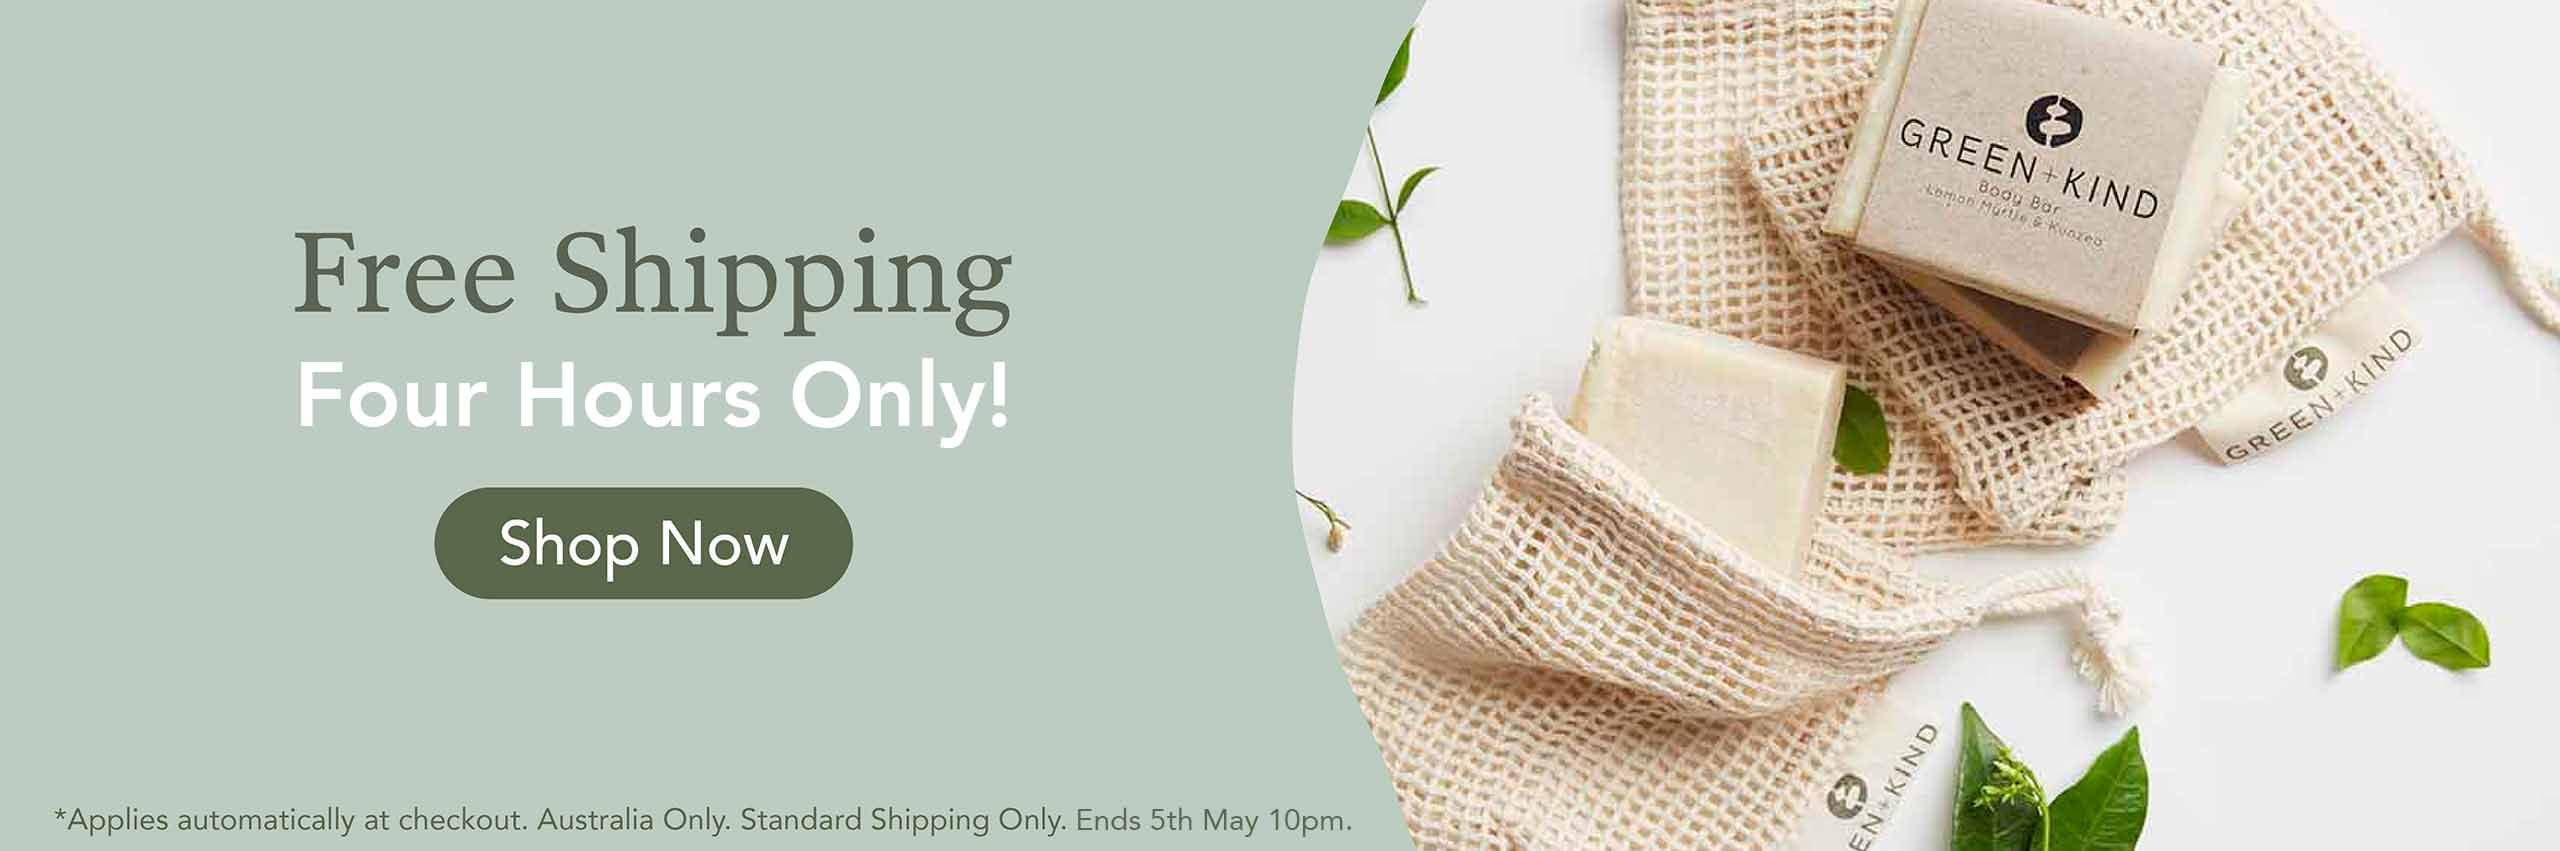 Free Delivery Four Hours Only